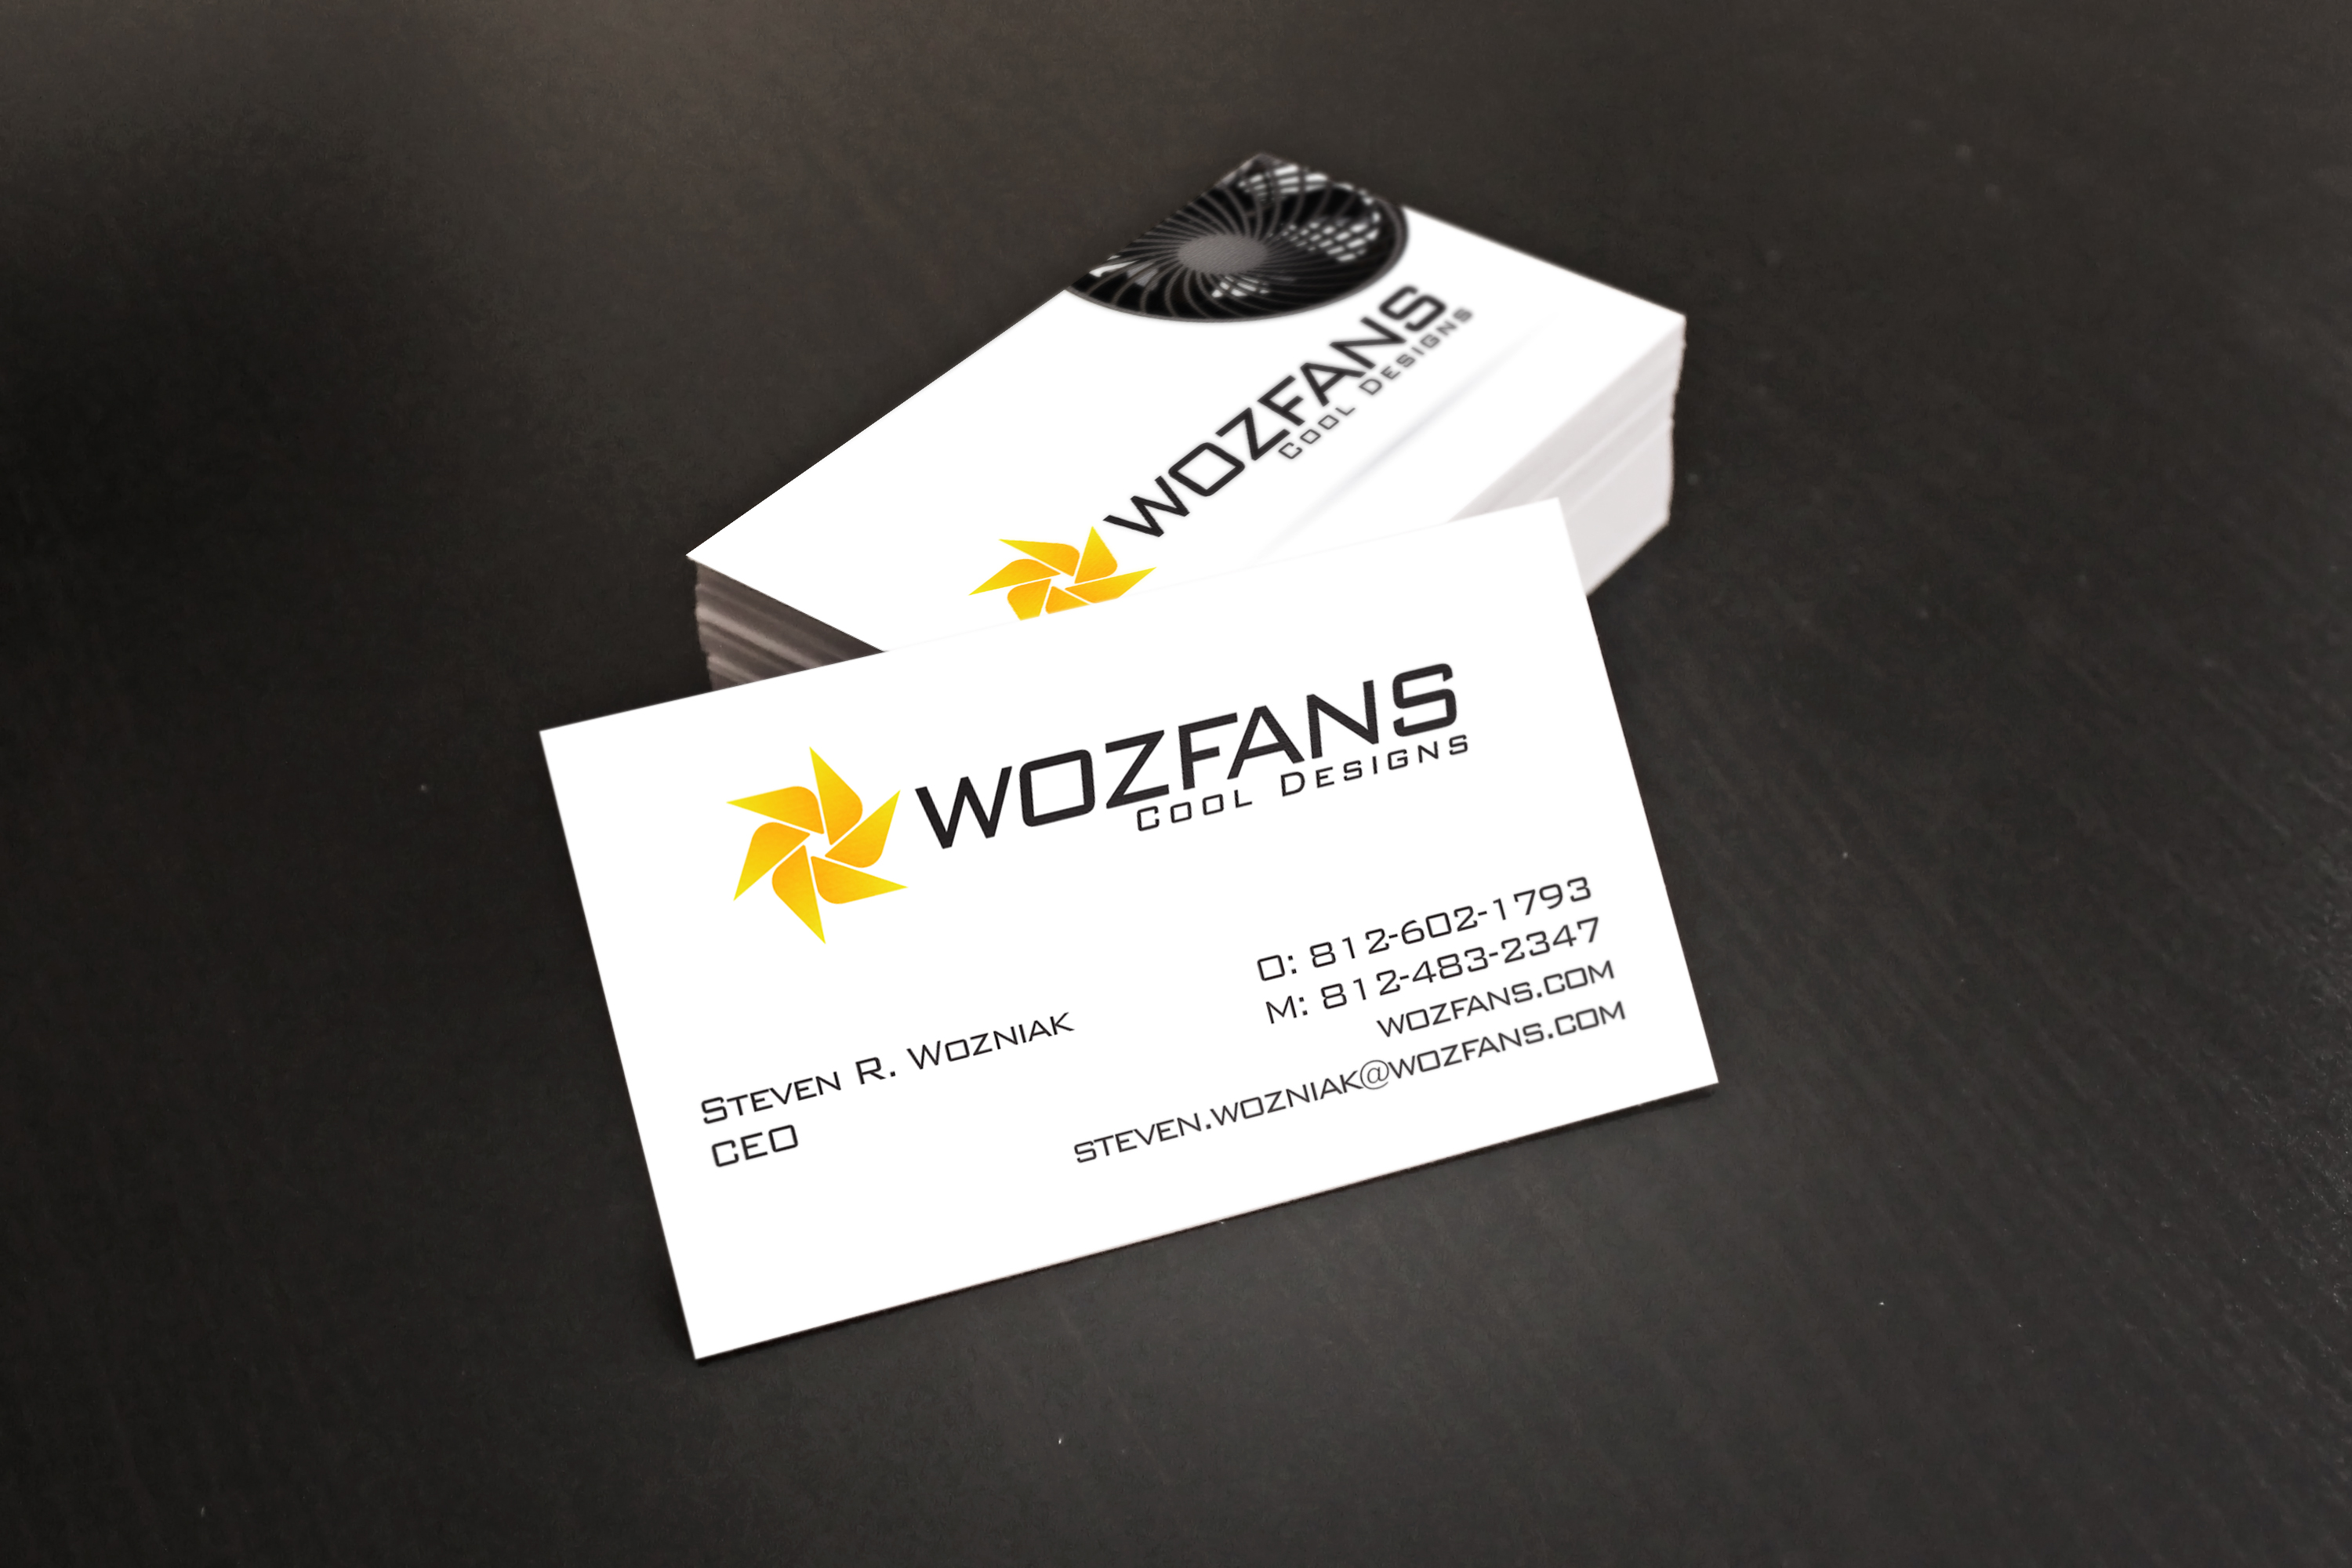 Woz fans business card design ideaseat woz fans business card design magicingreecefo Gallery